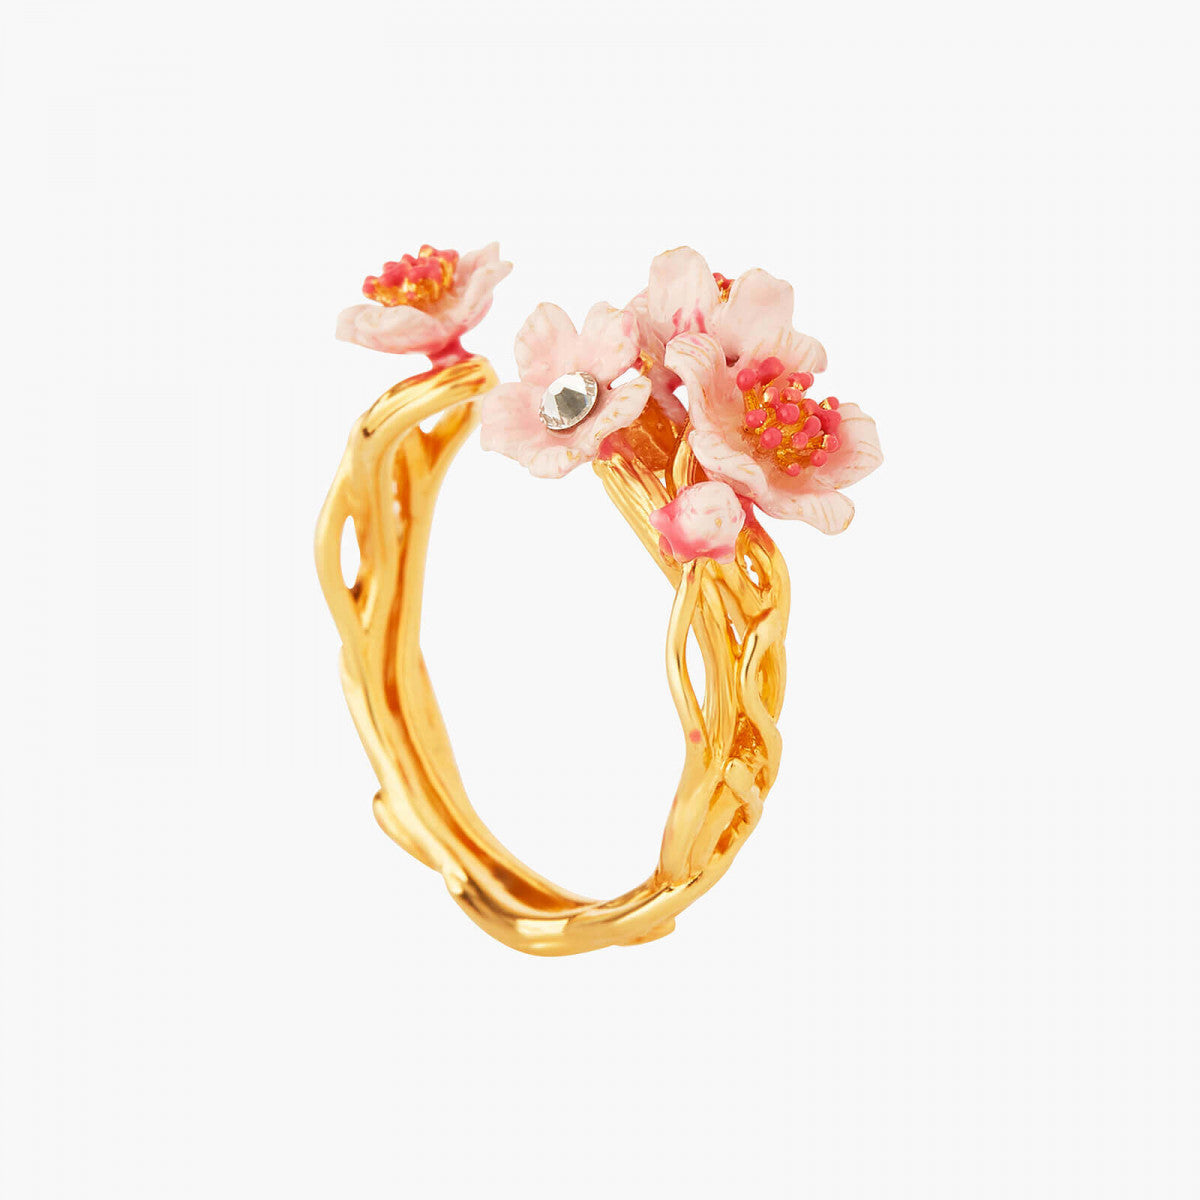 Pink Japanese Cherry Blossom and golden branch adjustable Ring